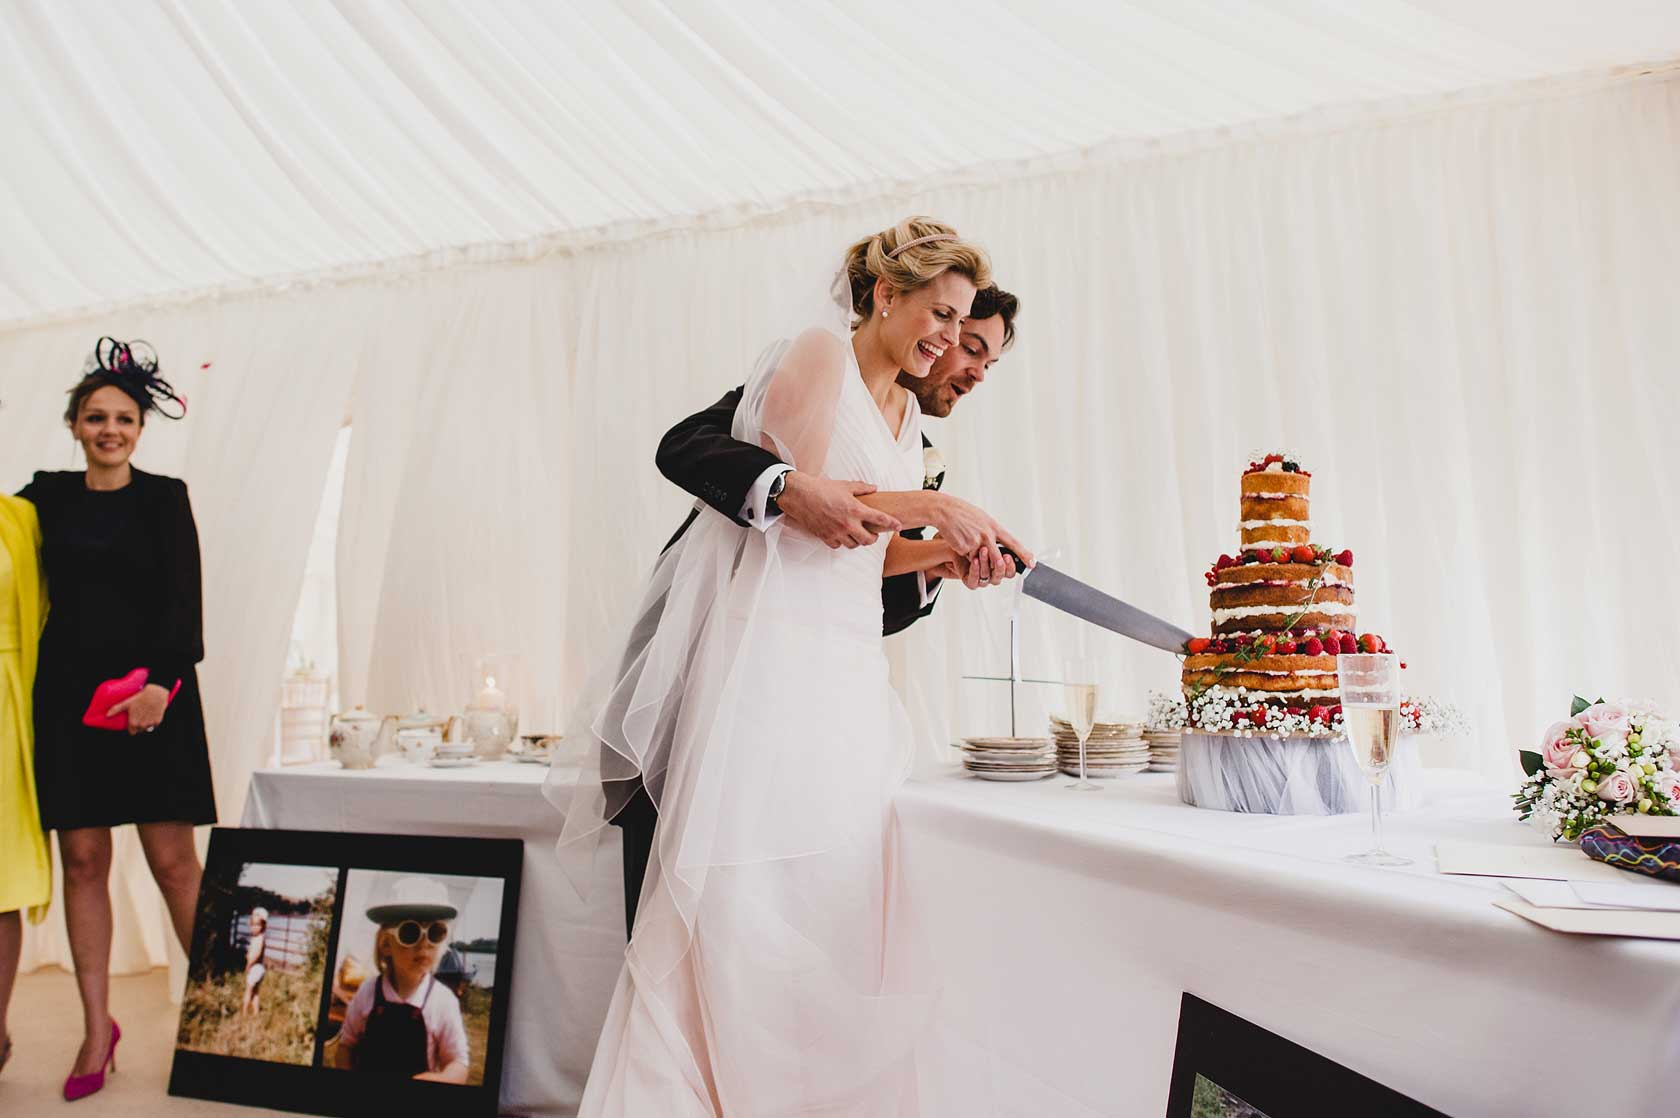 Wedding Photography in Harrogate